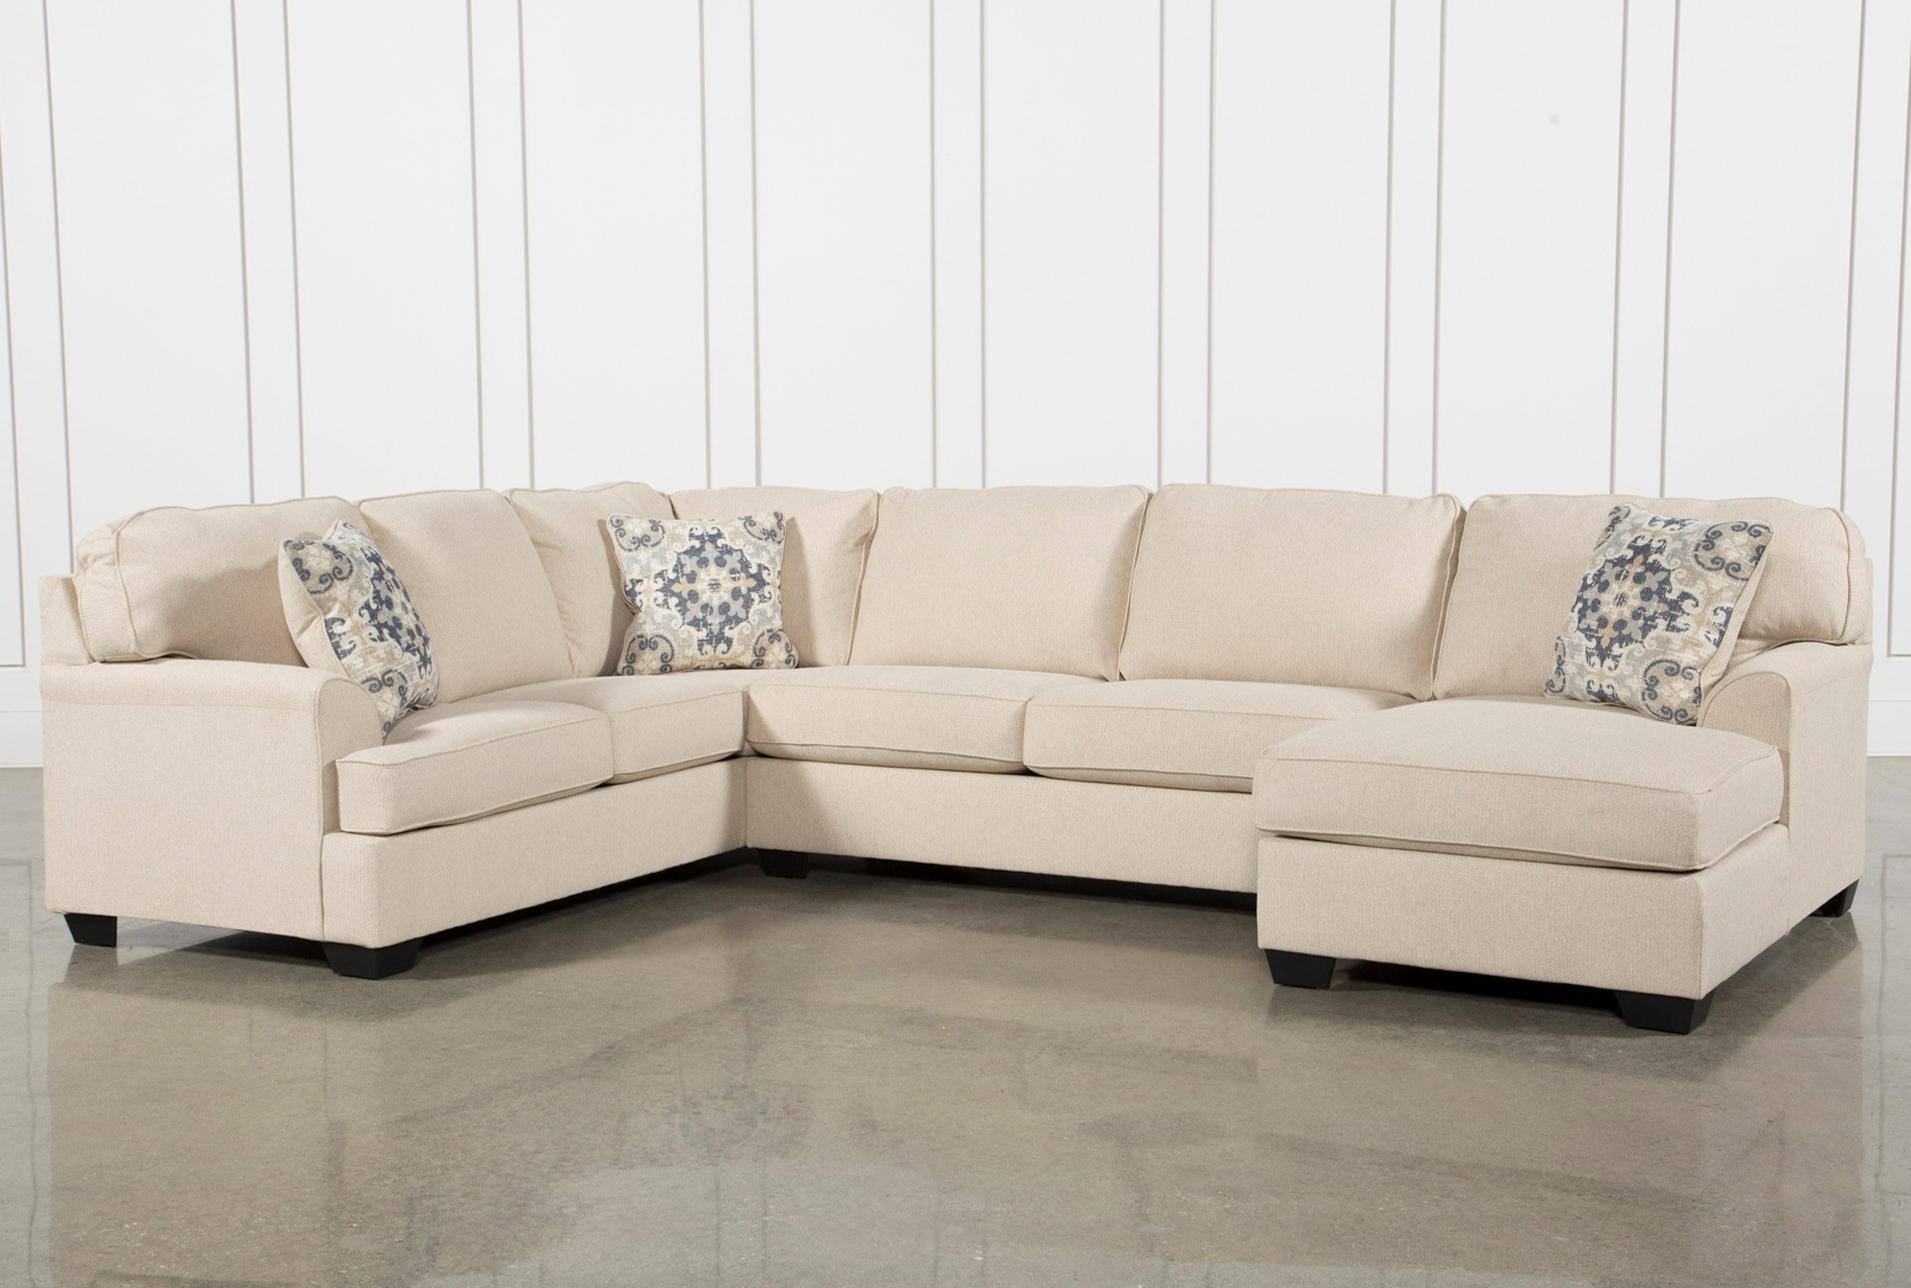 Widely Used Evan 2 Piece Sectionals With Raf Chaise Inside 3 Piece Sectional – Locsbyhelenelorasa (View 19 of 20)